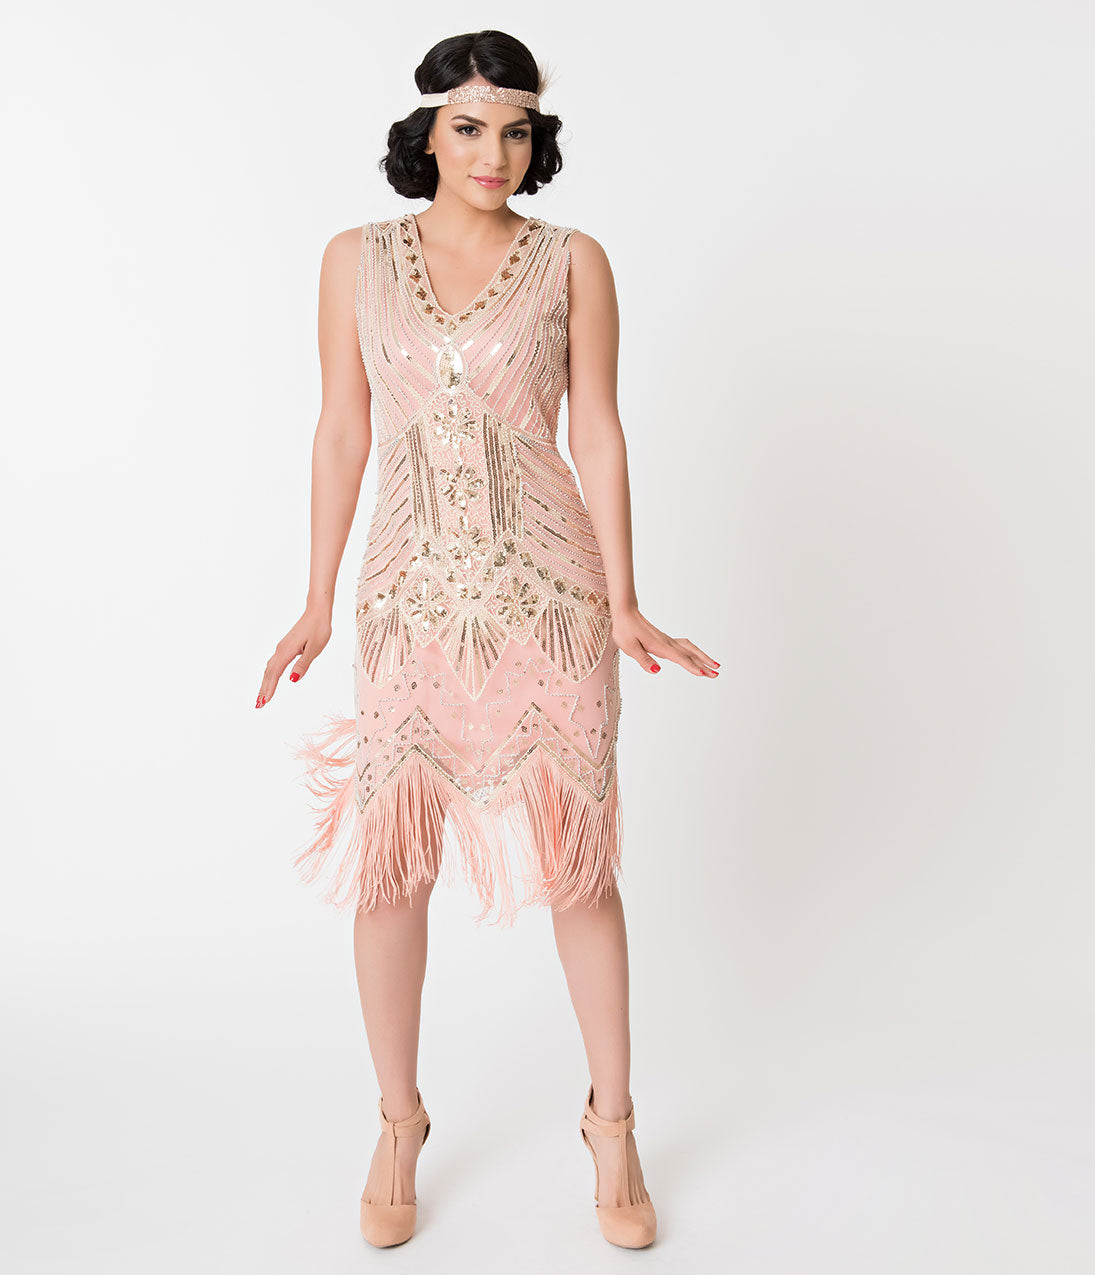 Roaring 20s Costumes- Flapper Costumes, Gangster Costumes Unique Vintage 1920S Deco Peach  Gold Veronique Fringe Flapper Dress $59.00 AT vintagedancer.com